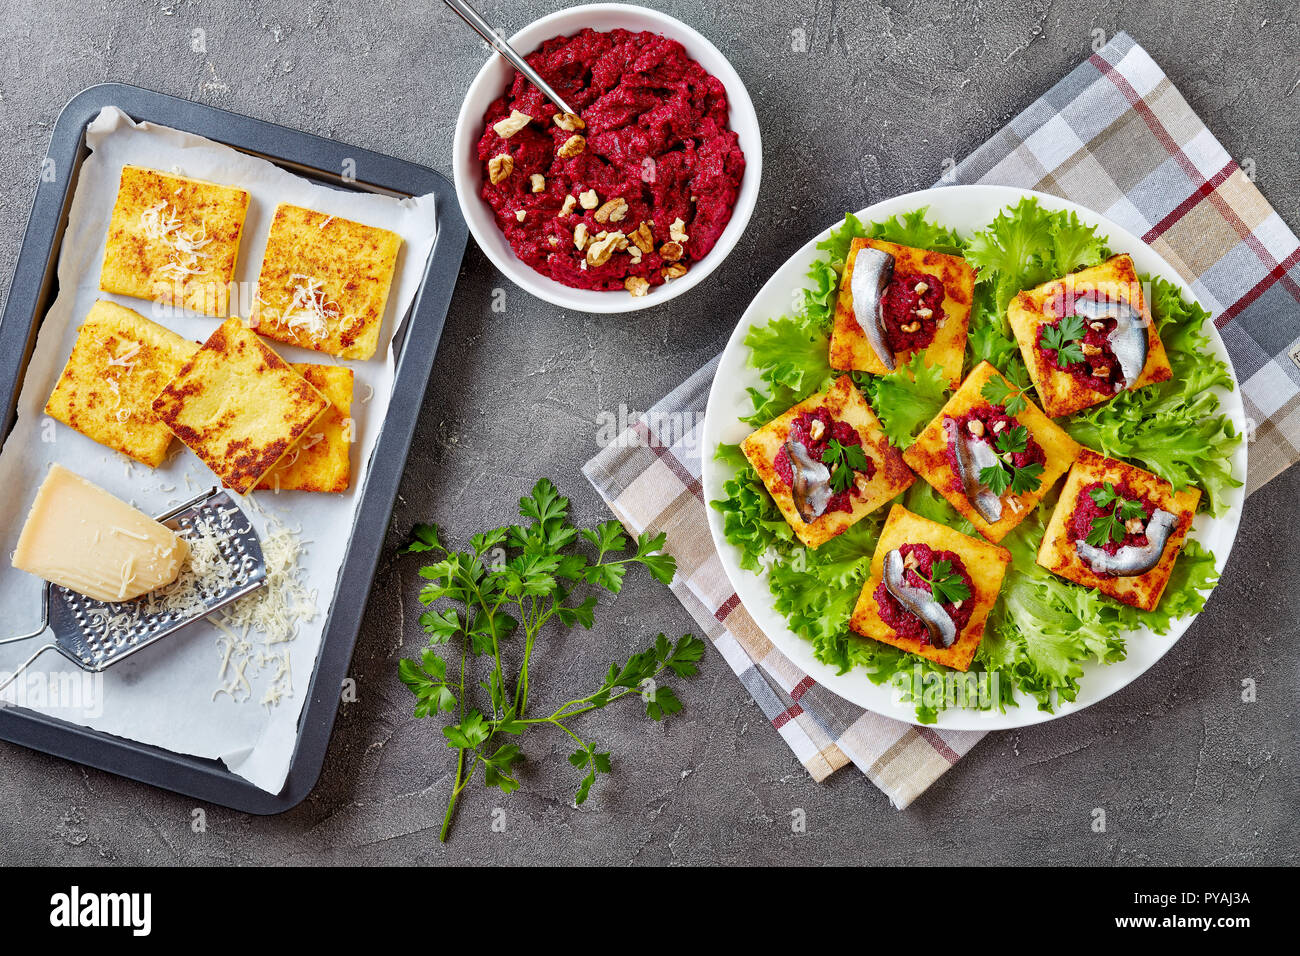 Polenta Squares with Creamy beetroot puree, topped with anchovies and parsley on a white plate. freshly baked polenta bars and parmesan on a baking tr - Stock Image